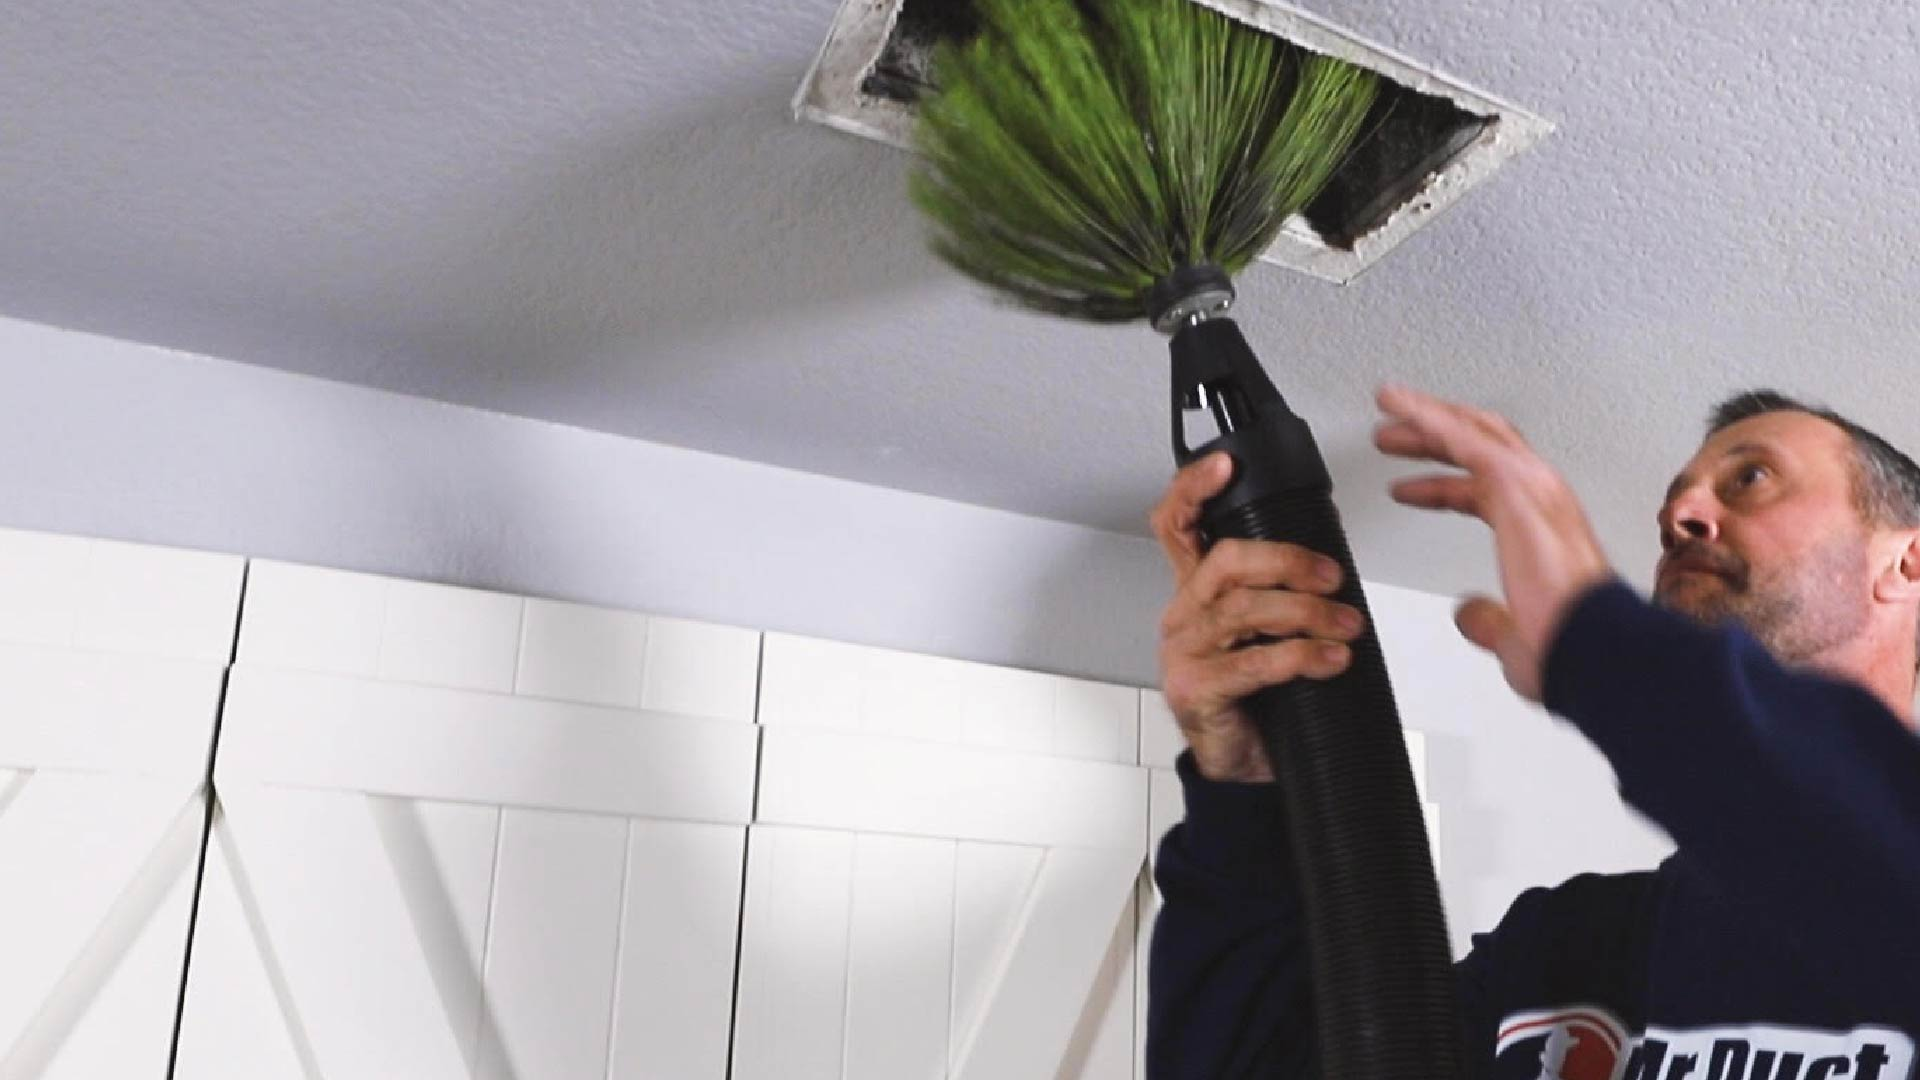 Air Duct Cleaning Services | S & R Air Duct Cleaning Services